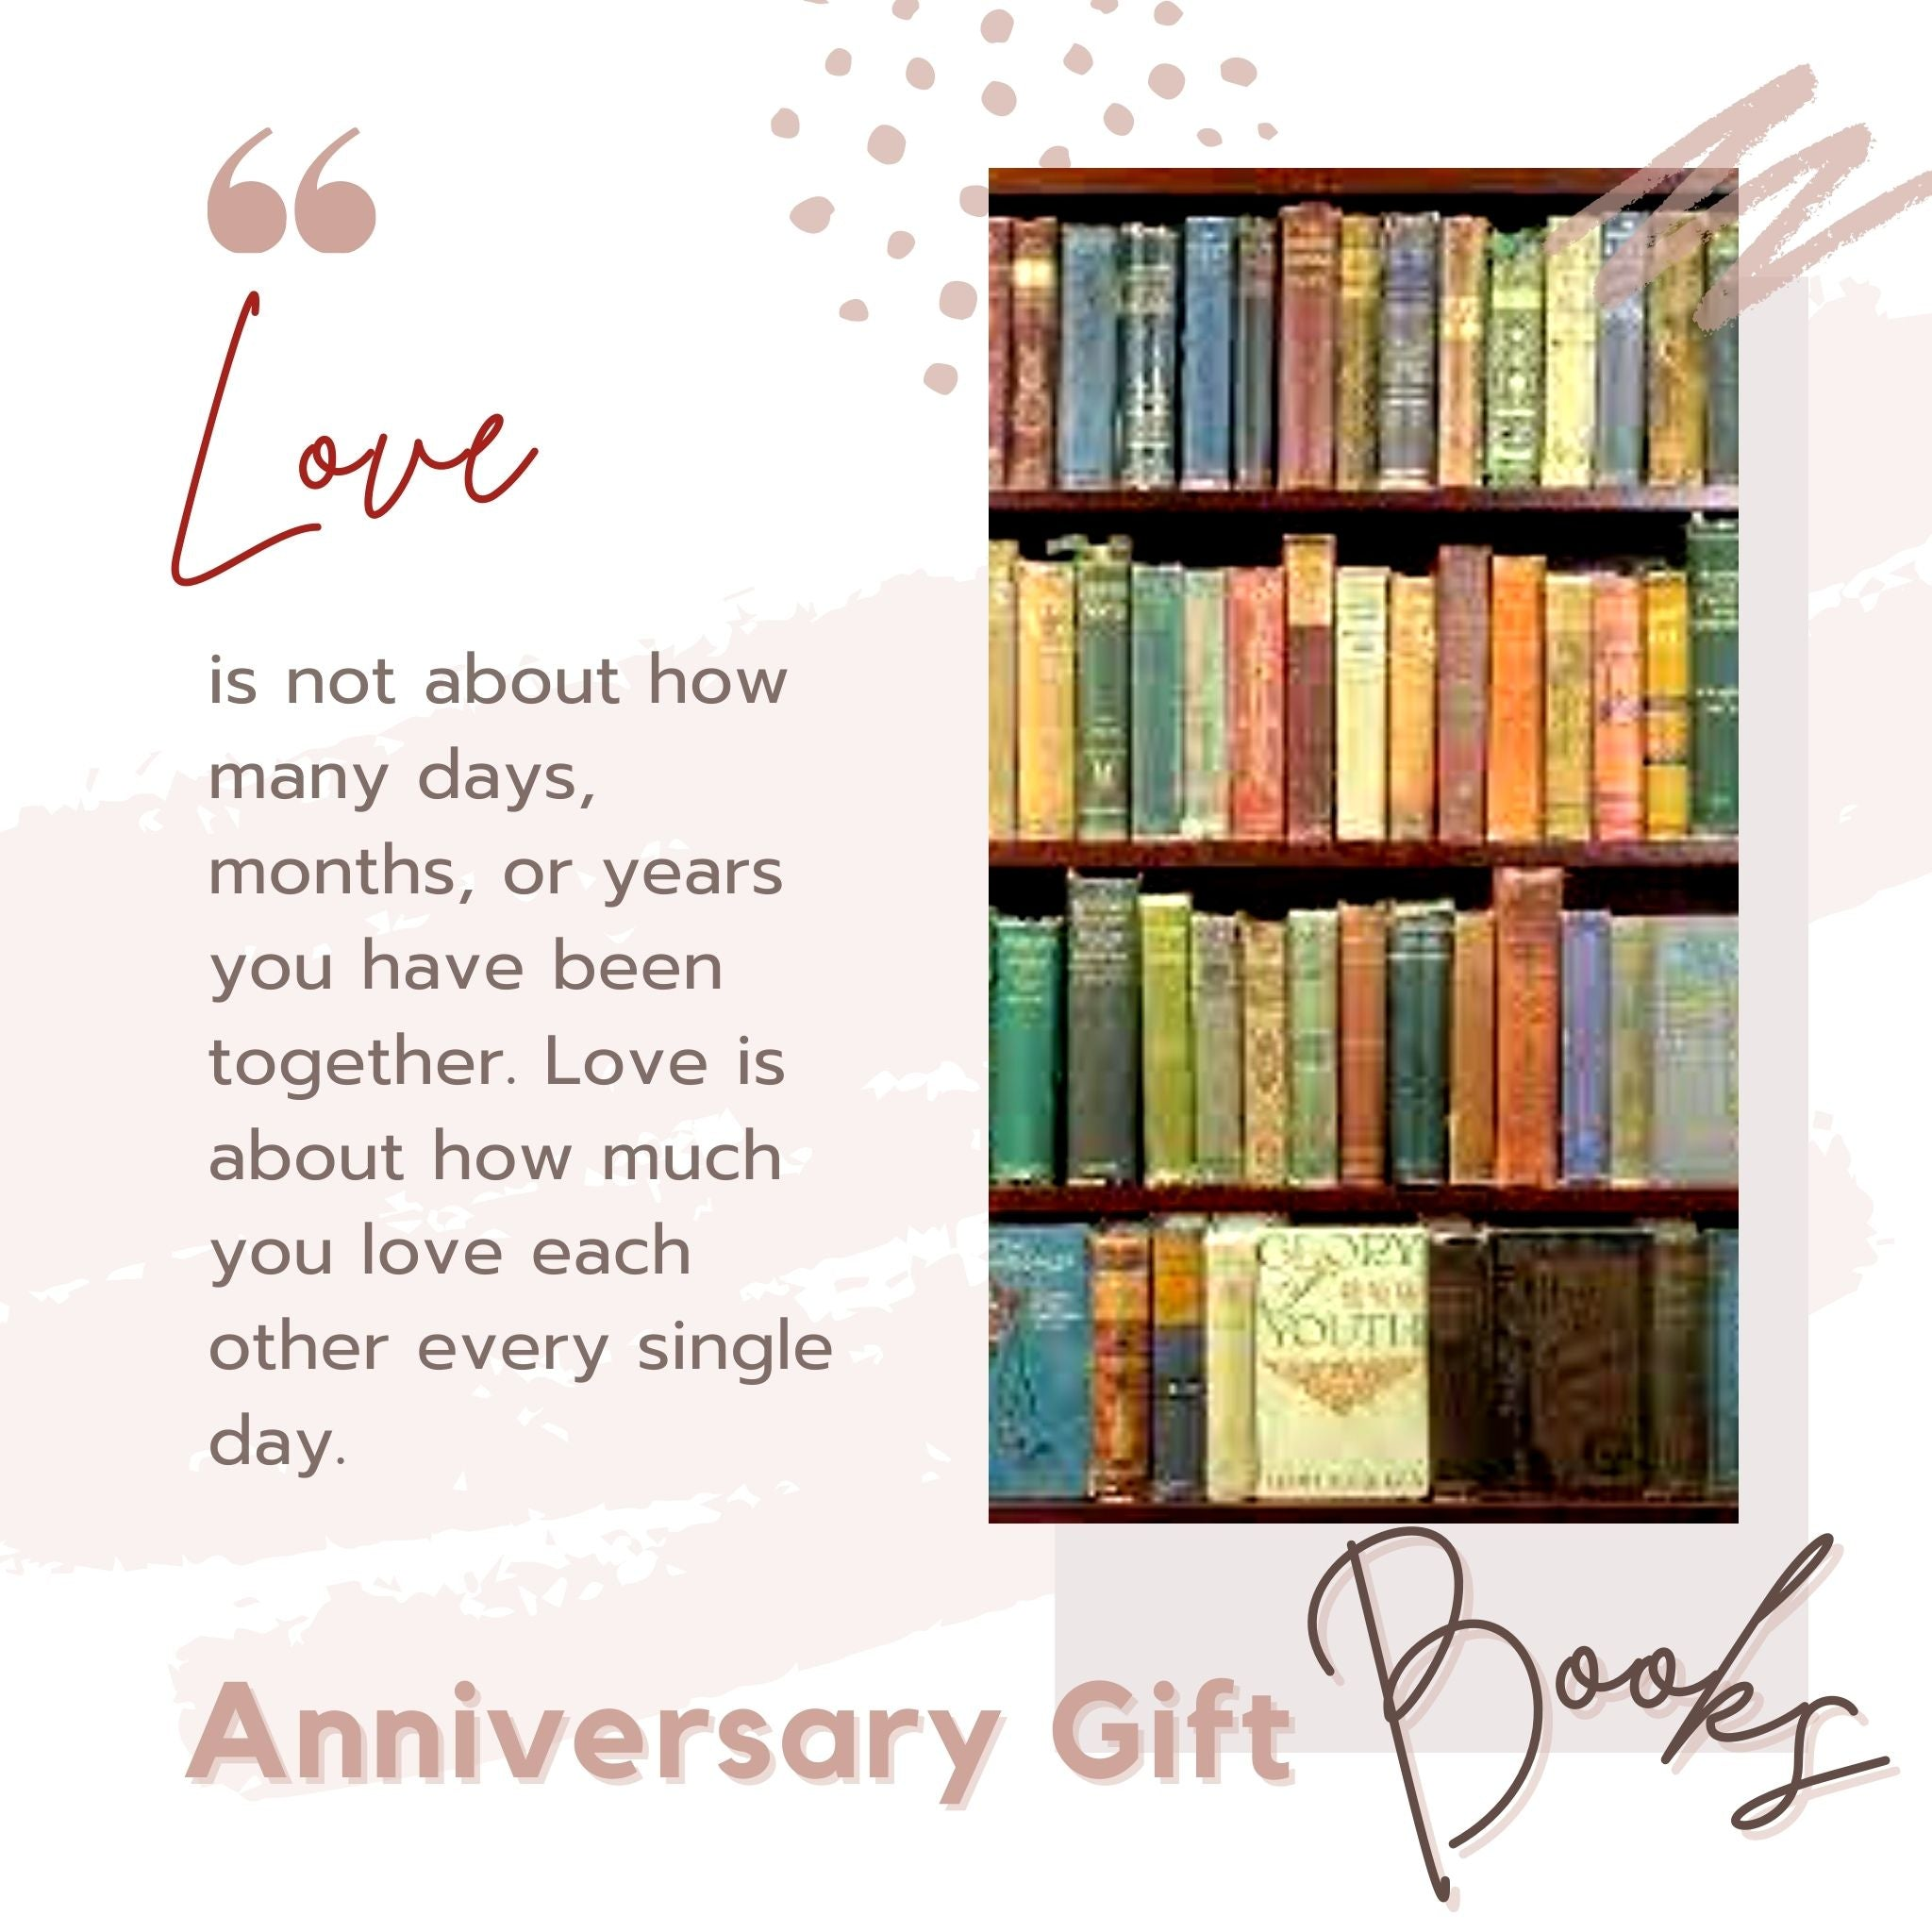 ANNIVERSARY GIFT IDEA GIFTS